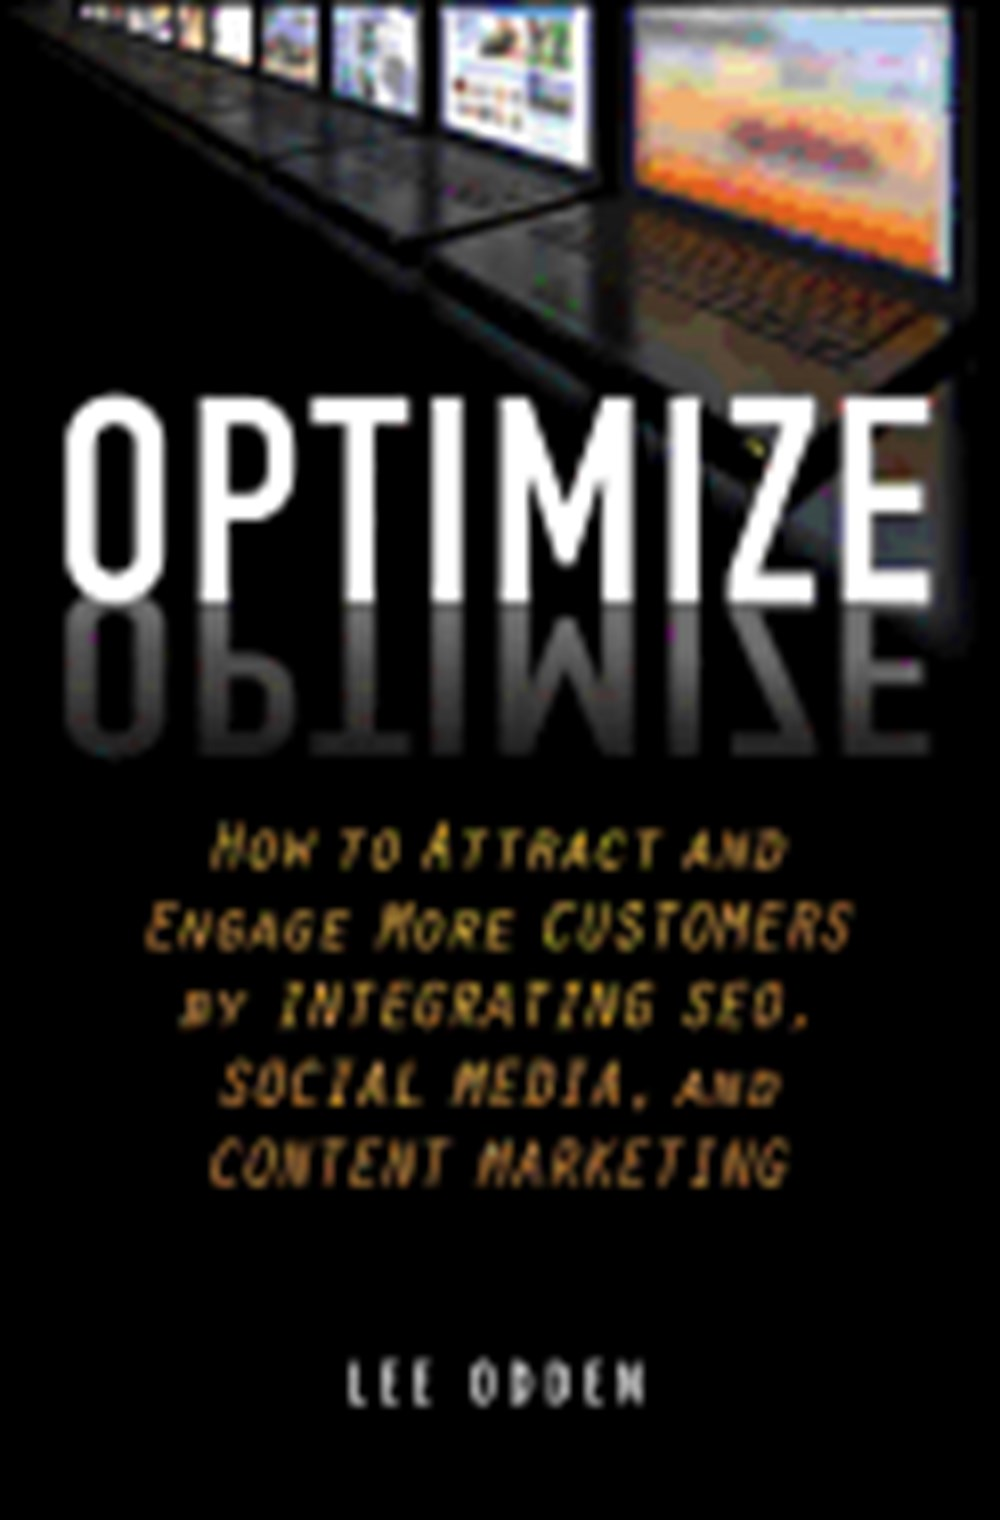 Optimize How to Attract and Engage More Customers by Integrating SEO, Social Media, and Content Mark